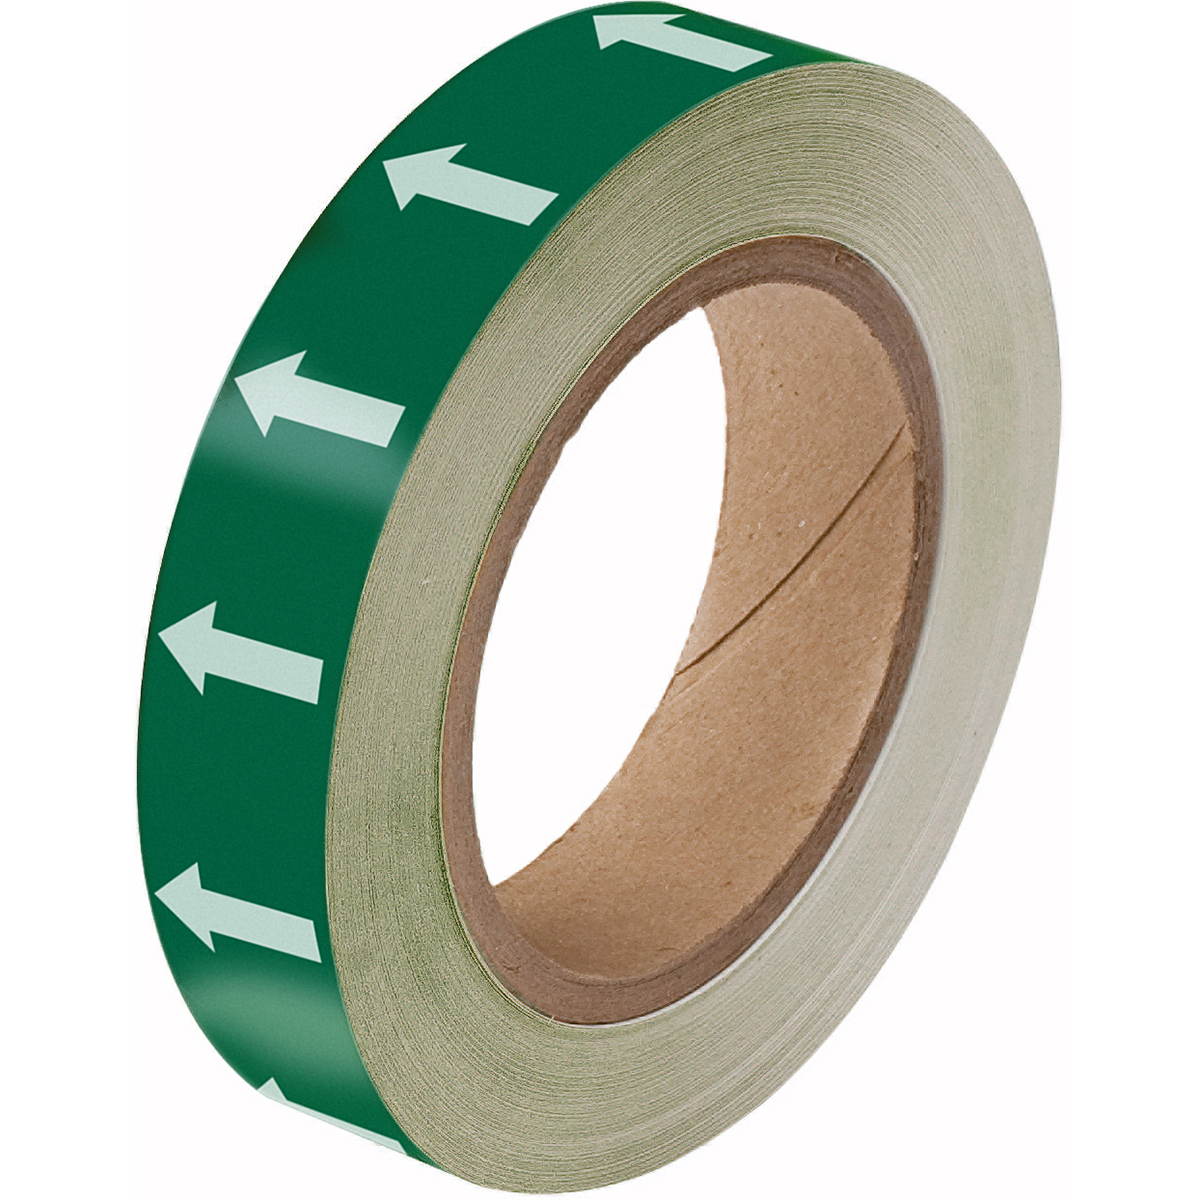 Flow Direction Tape - Green